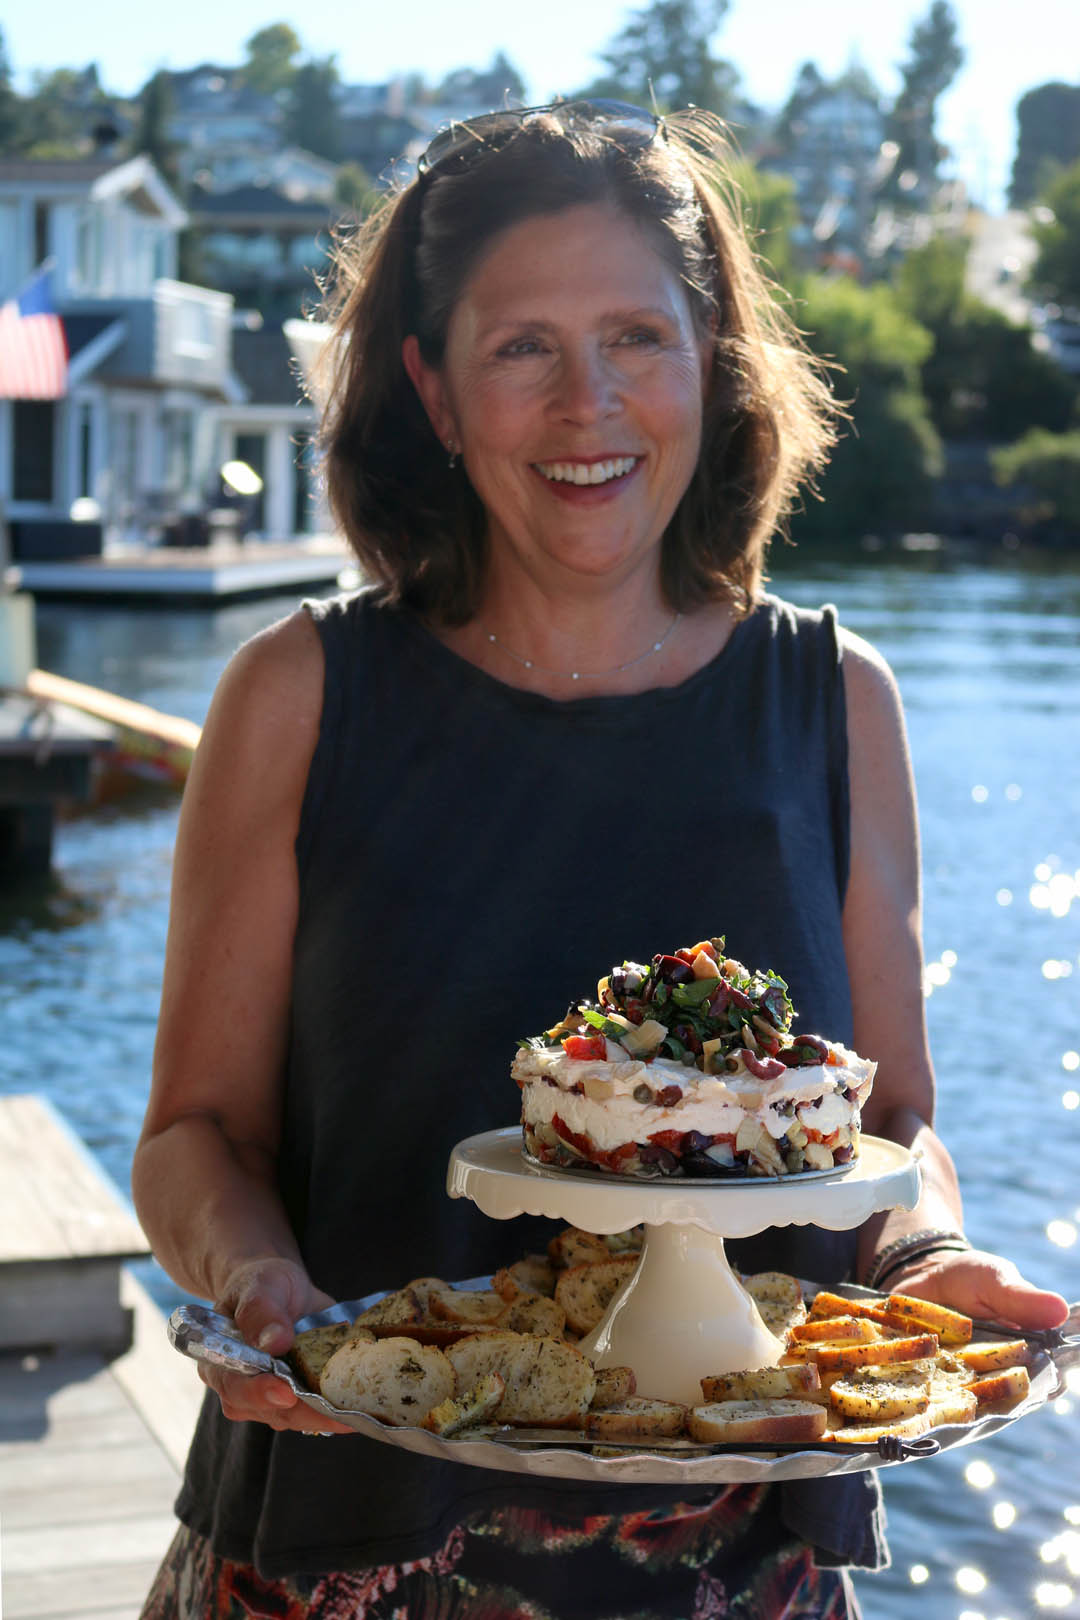 Smiling woman at the water's edge,holding italian torte with crisp baguette slices on a tiered platter.